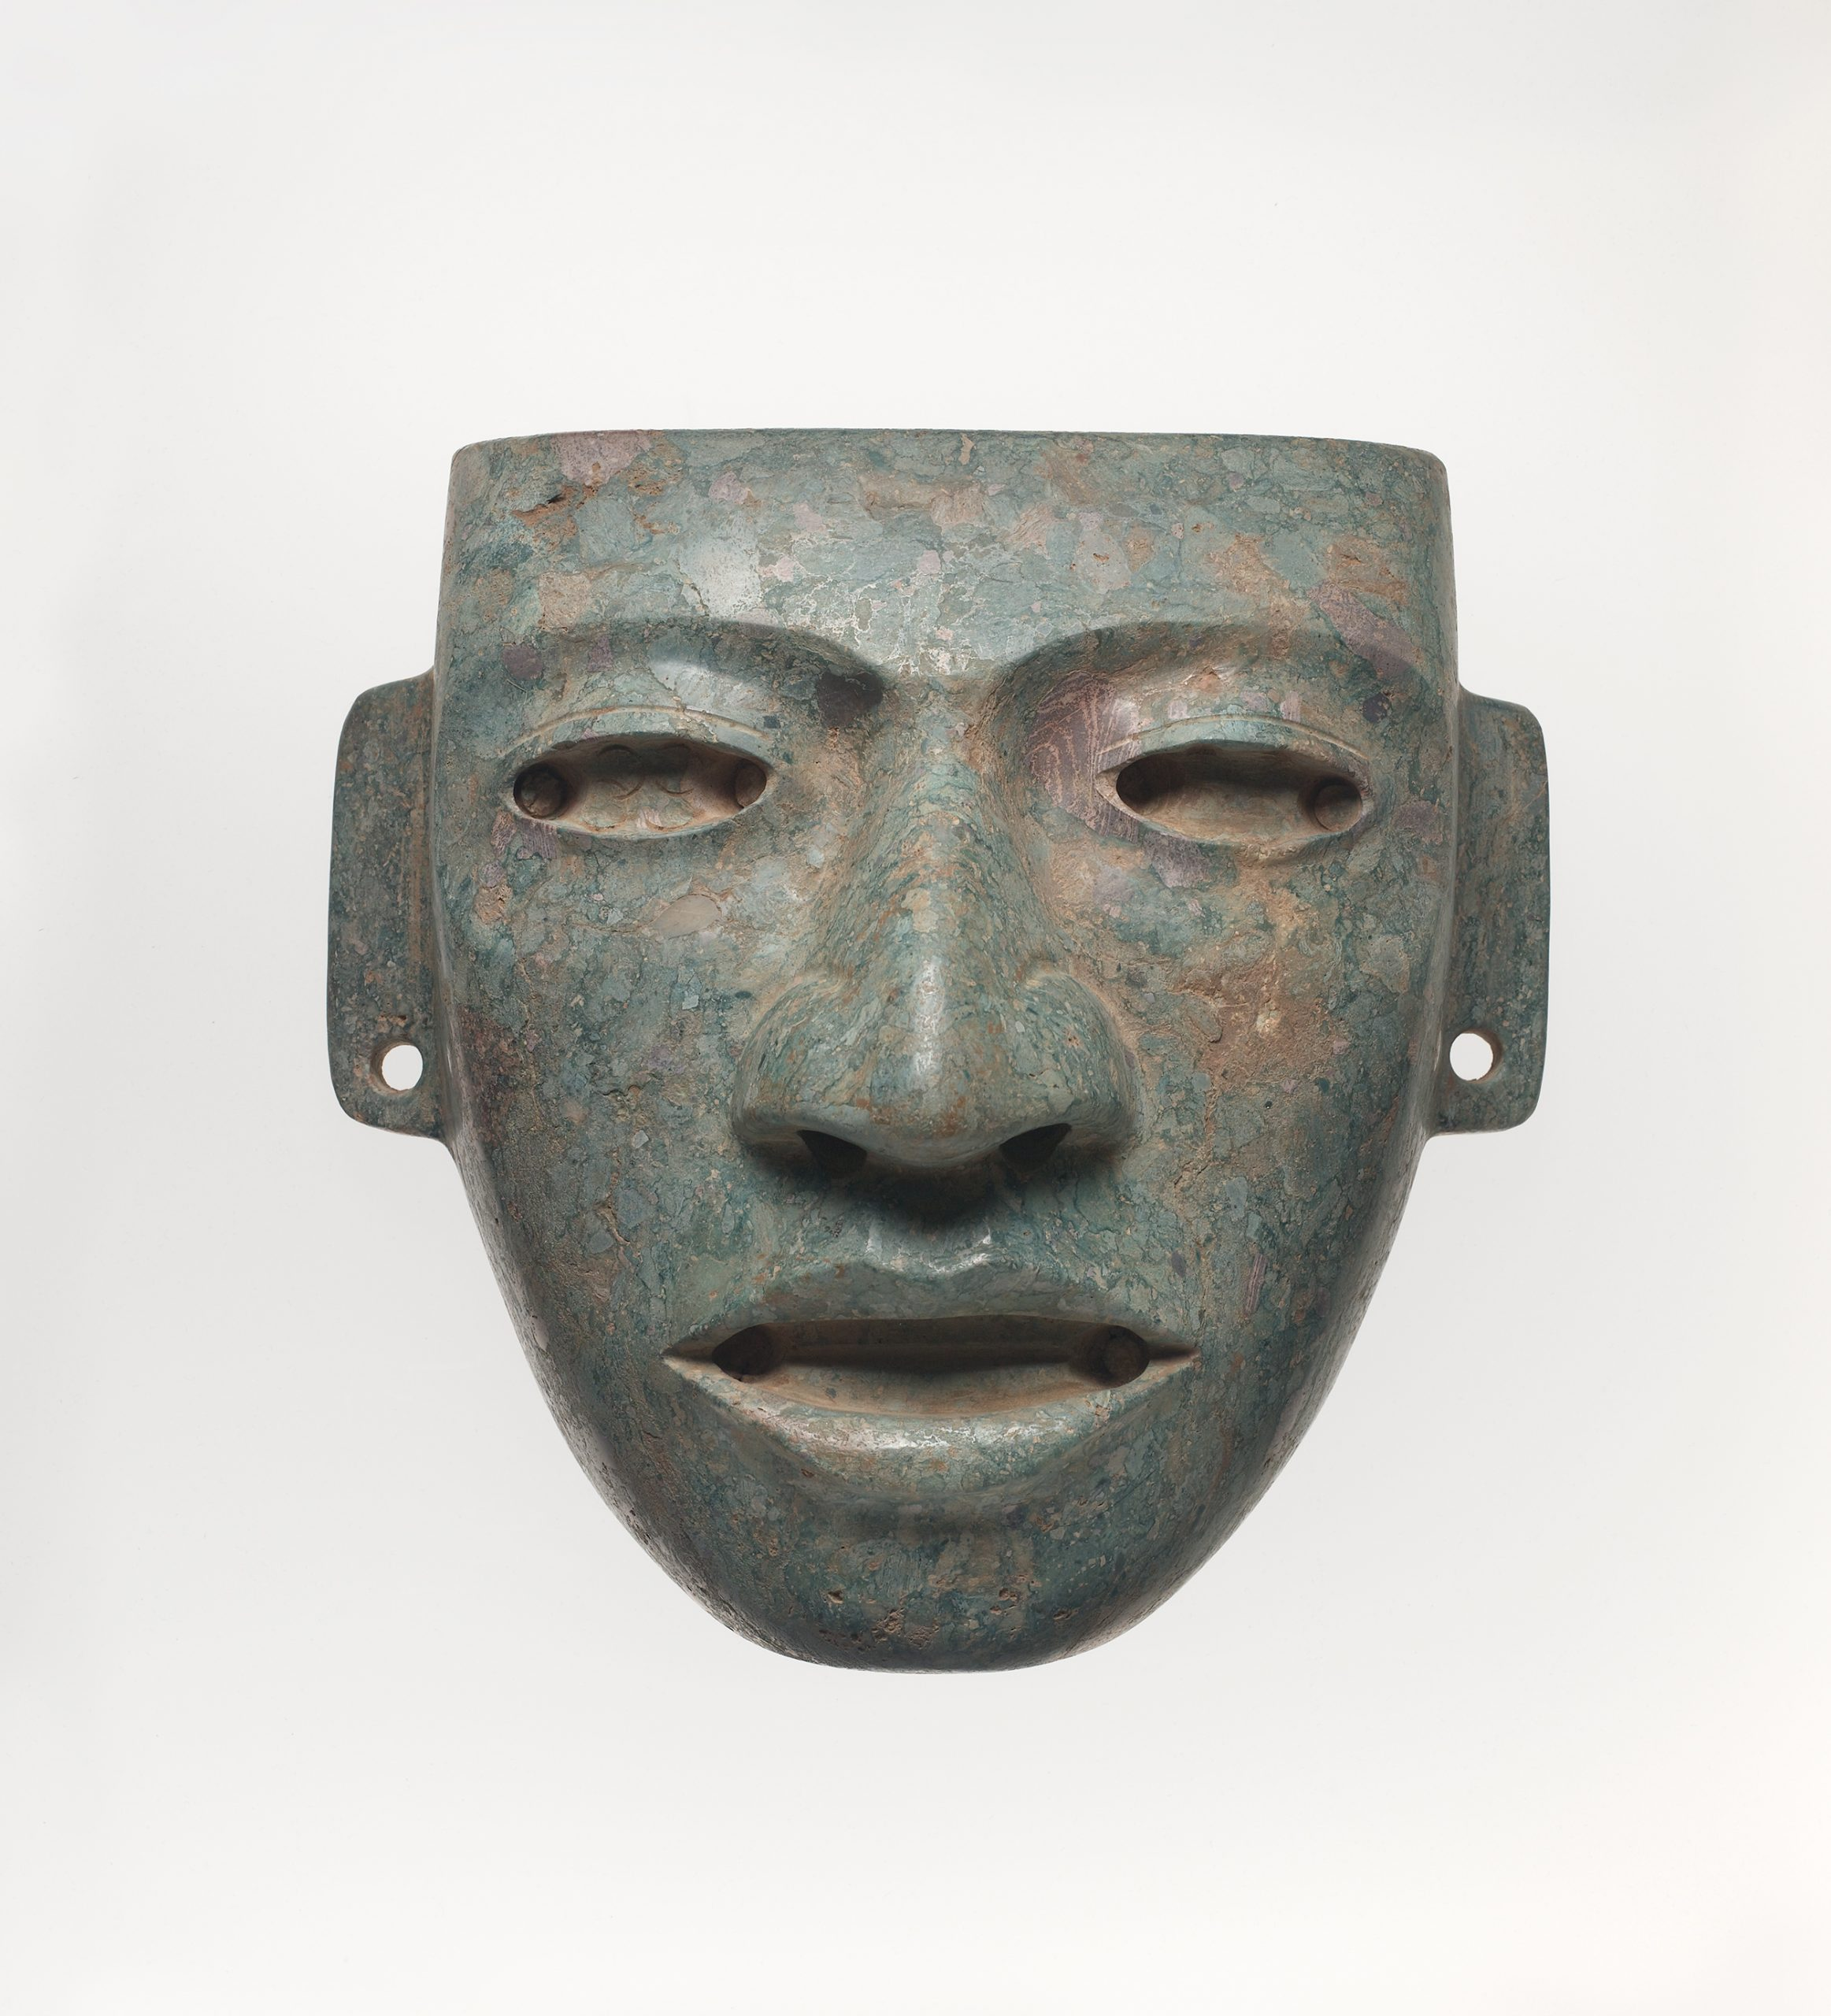 A naturalistic mask with large eyes, a broad pointed nose, and open mouth.